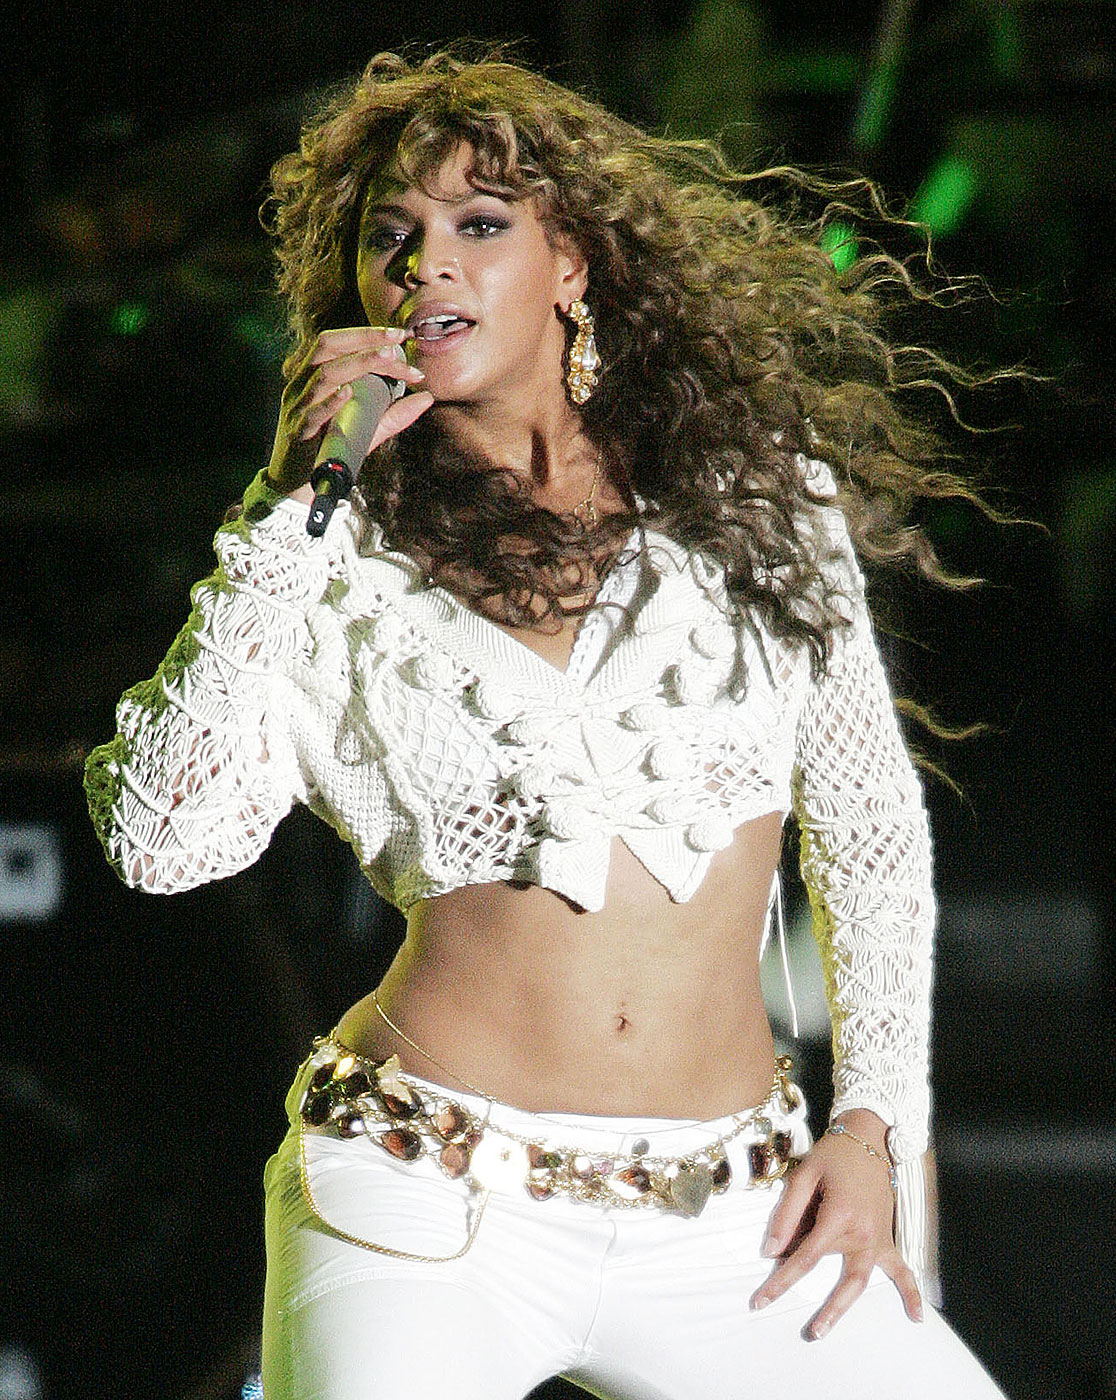 Beyonce performs during Rockin' the Corps Concert at Camp Pendelton in San Diego, California.